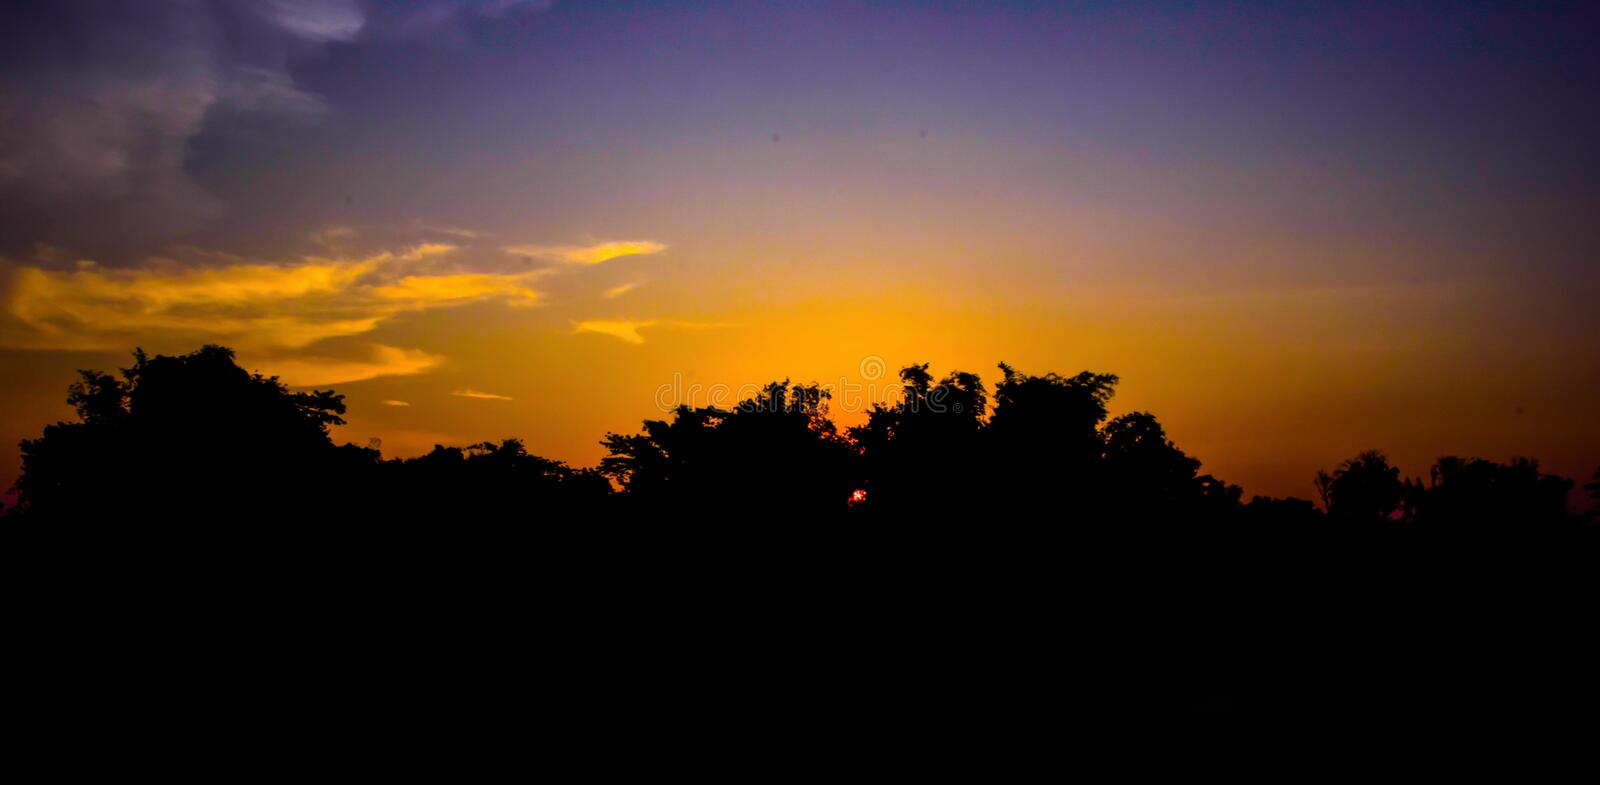 The silhouette of the top of the tree at sunset stock photography